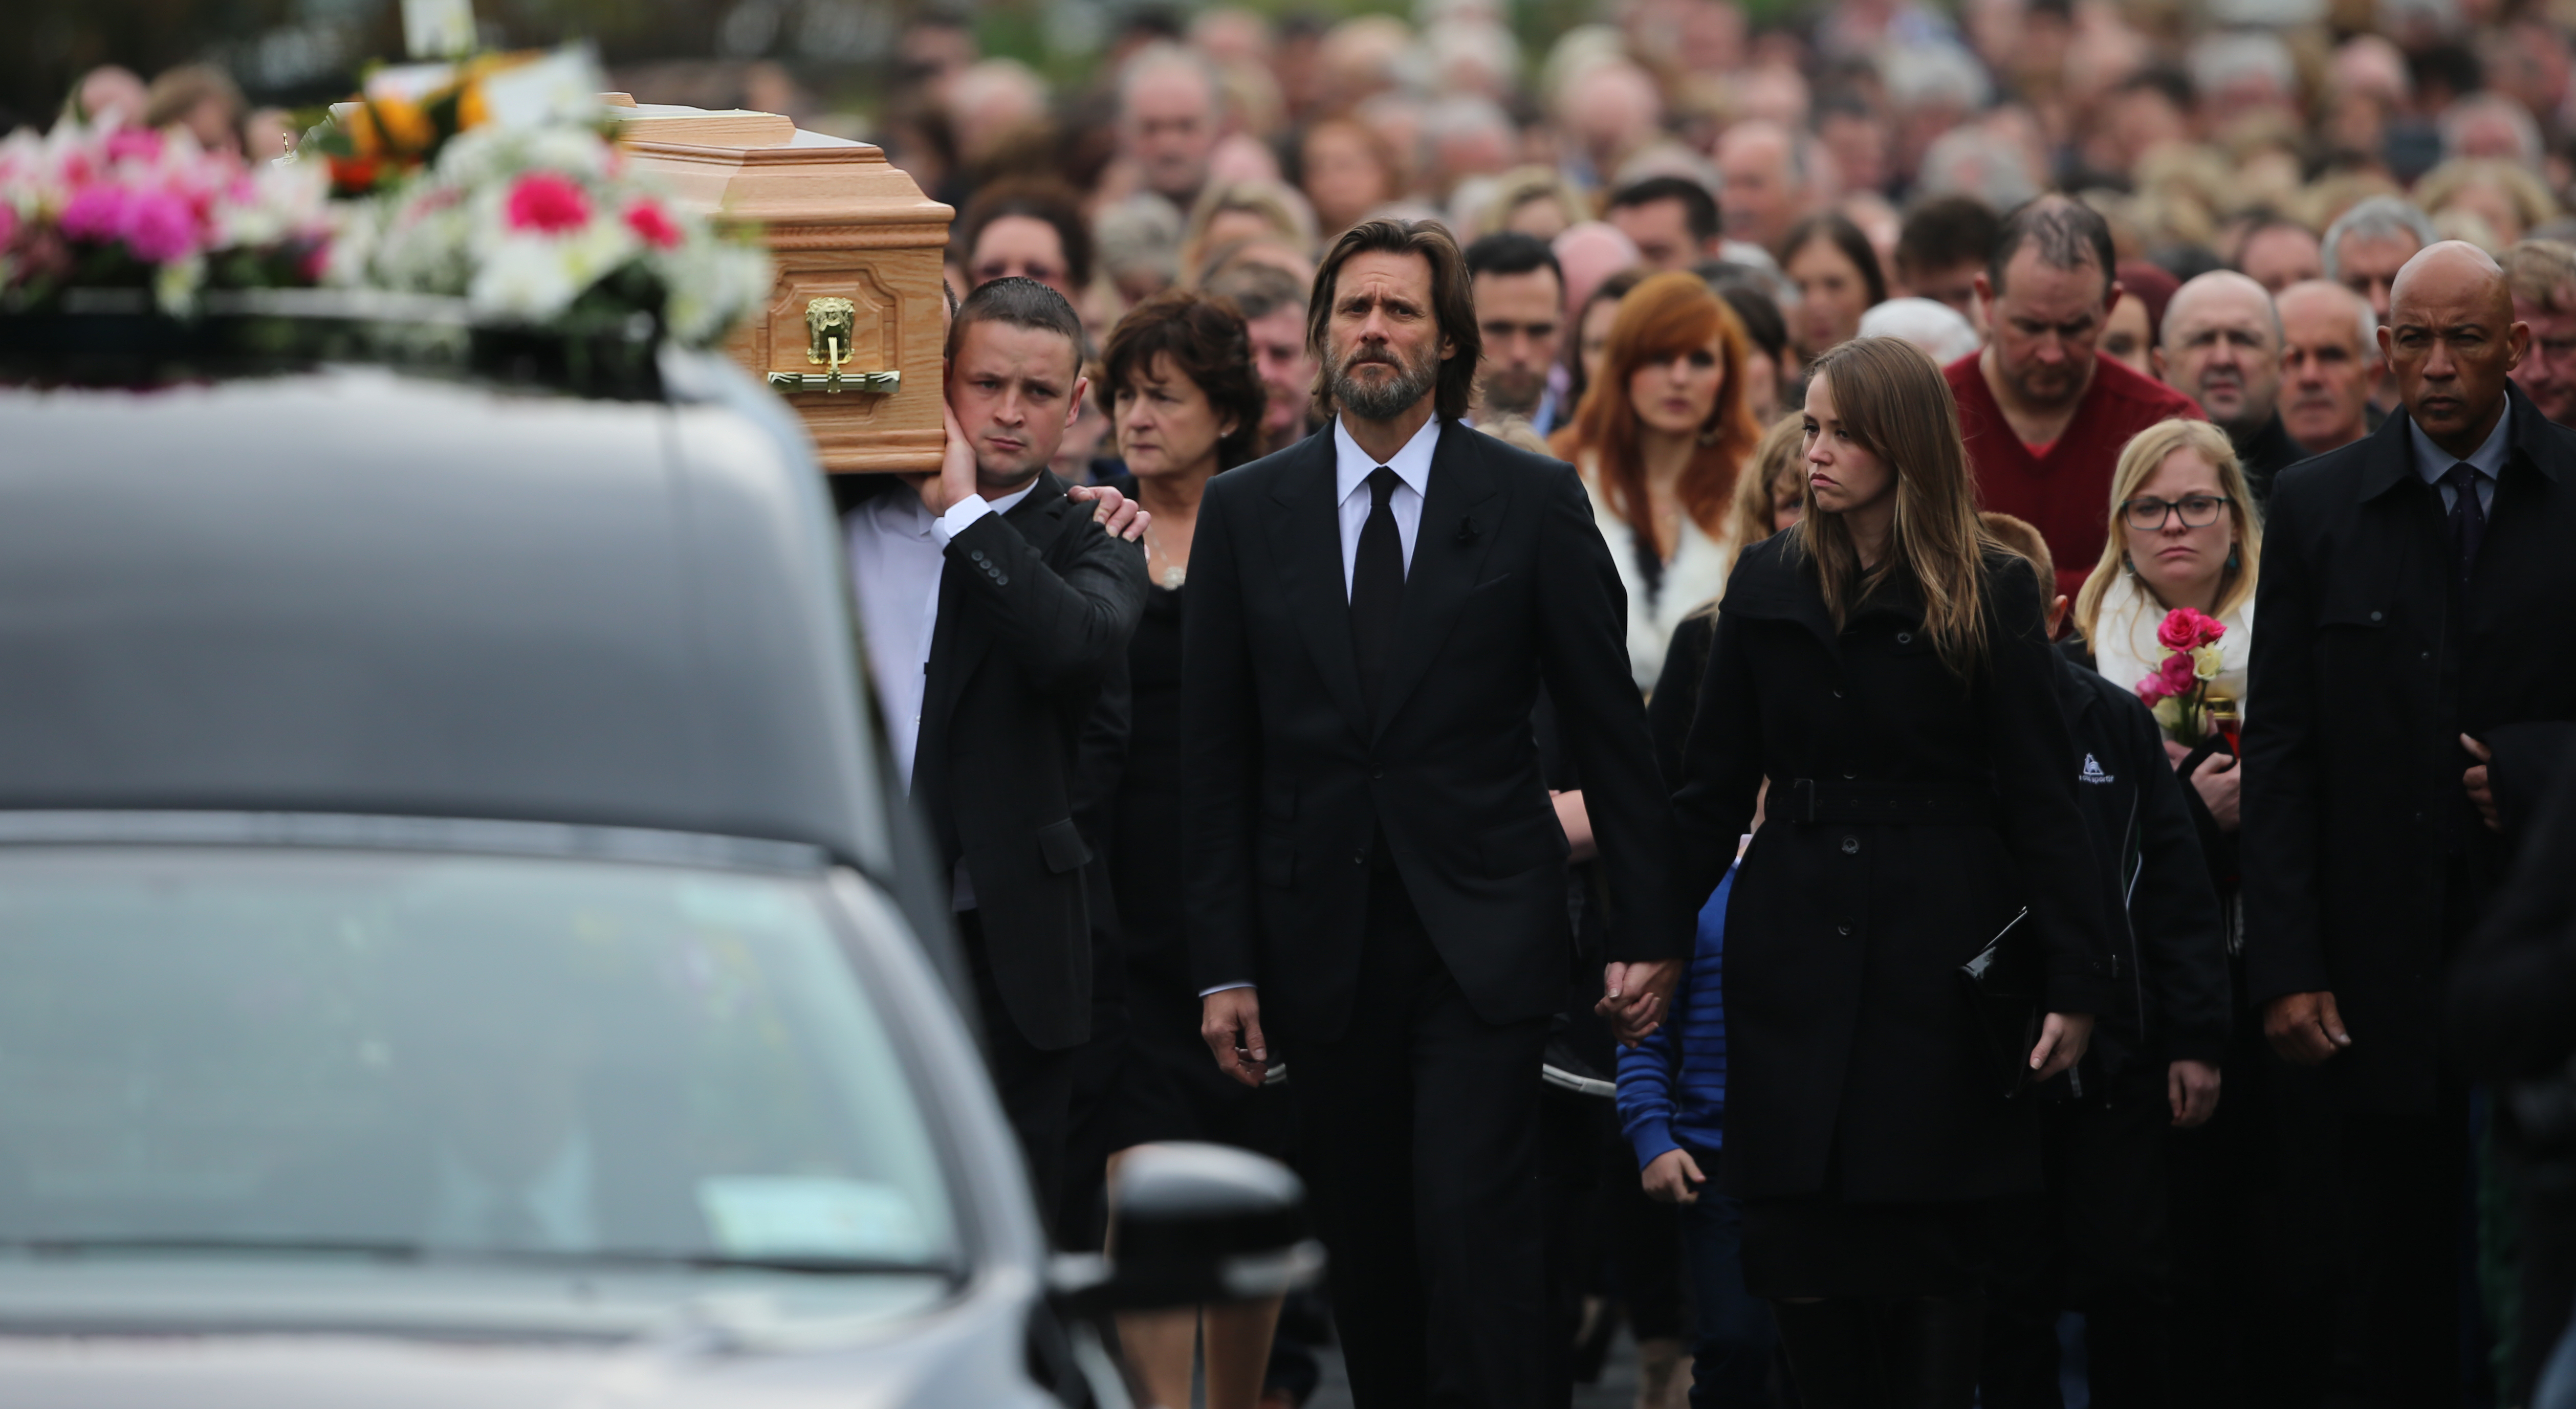 Jim Carrey with mourners